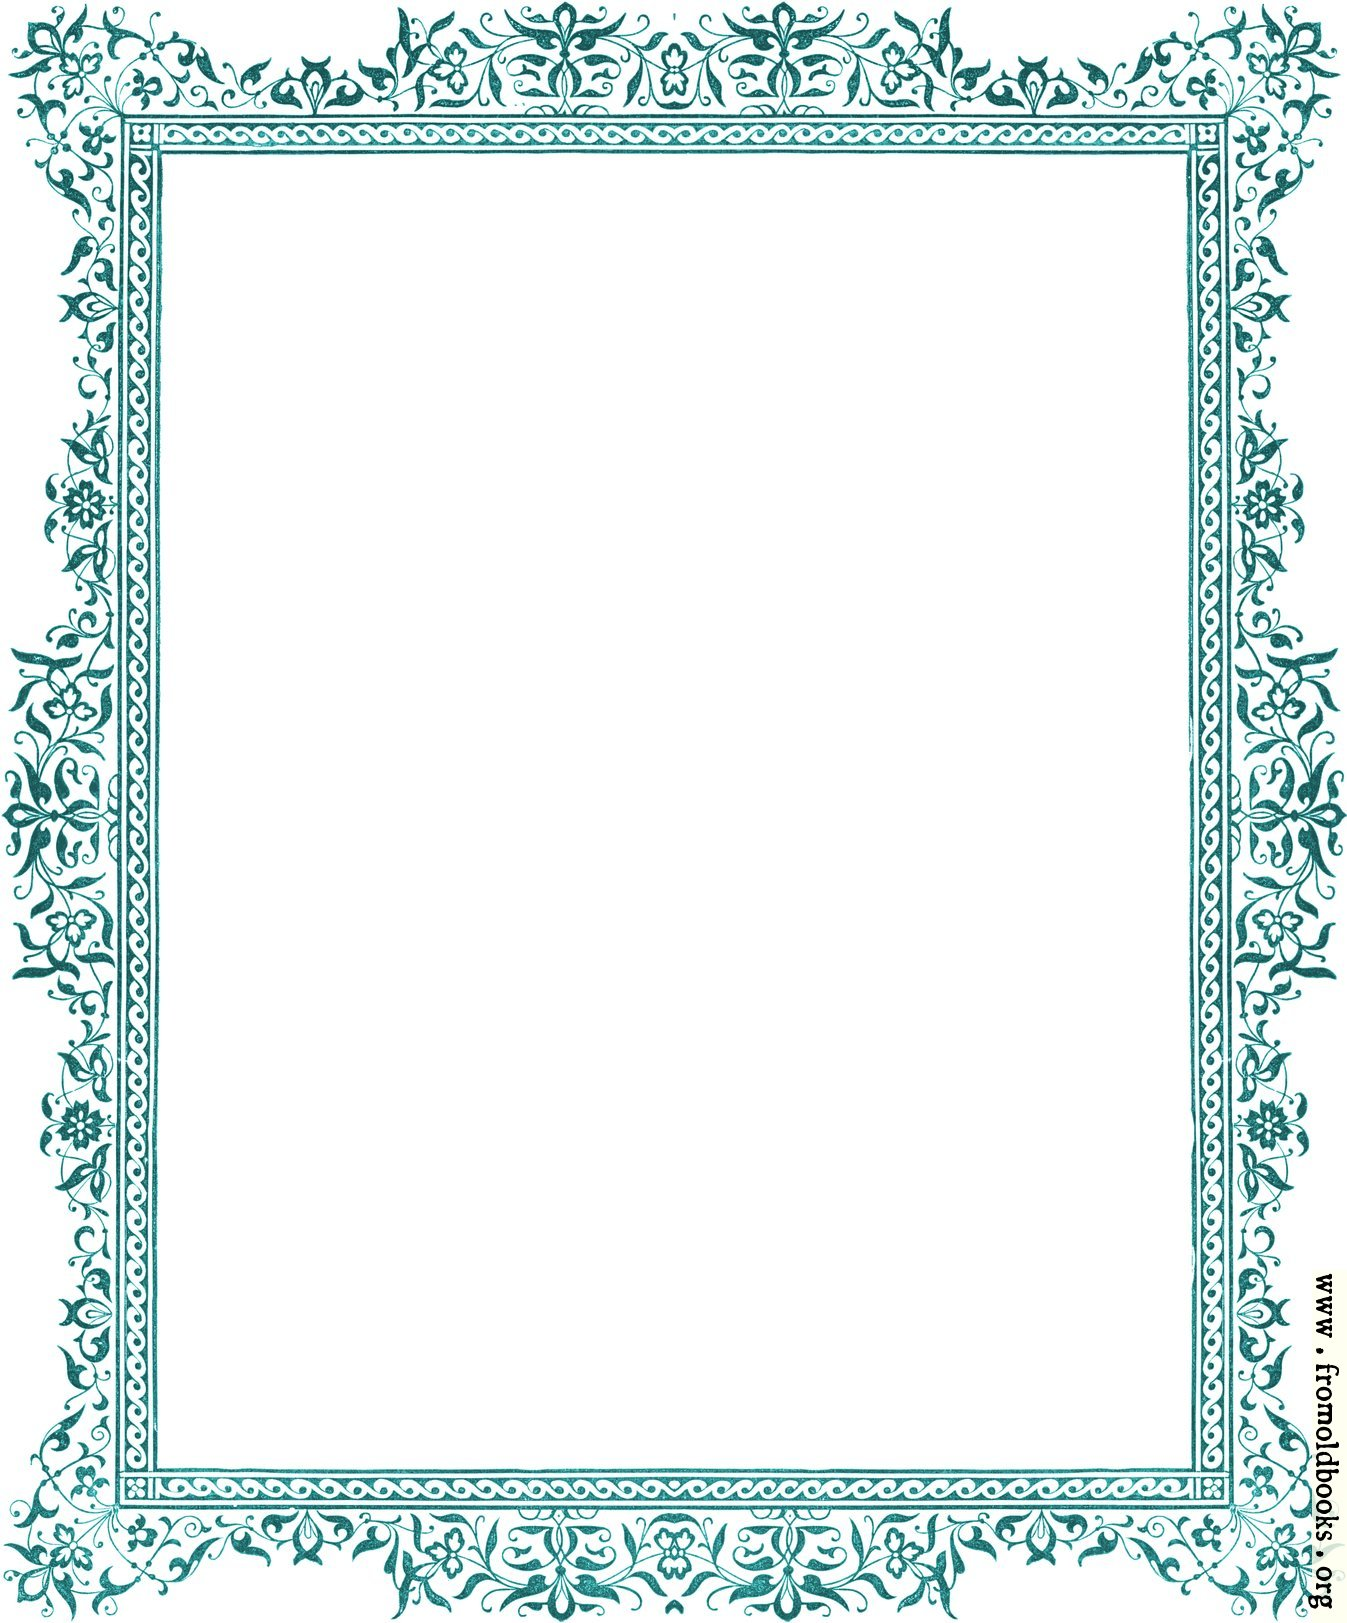 Decorative clip art Victorian border, antique green [image 1347x1623 ...